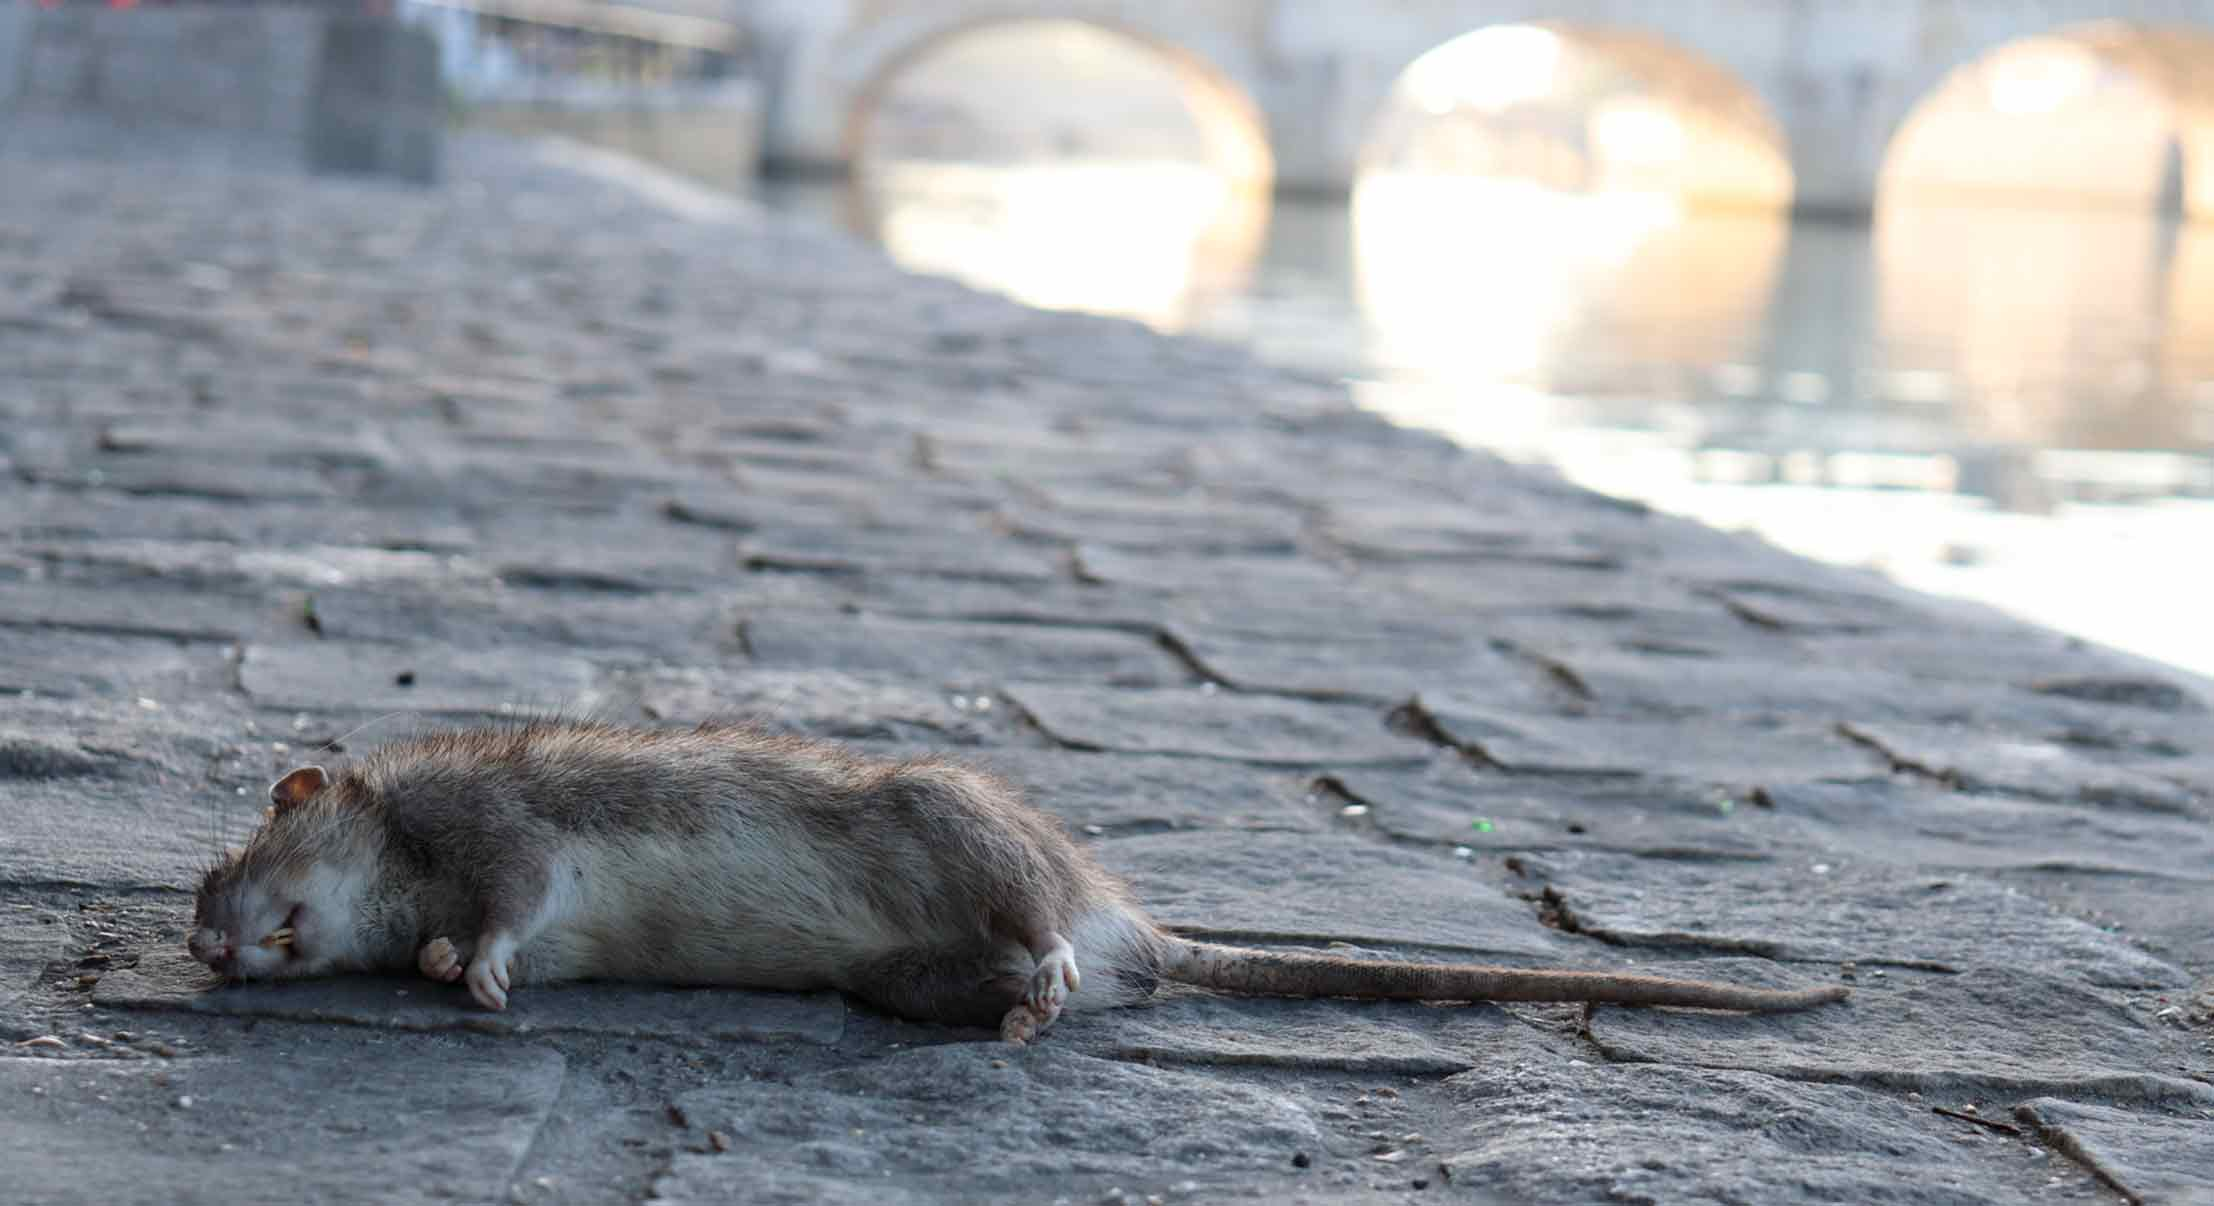 Rat urban pest image